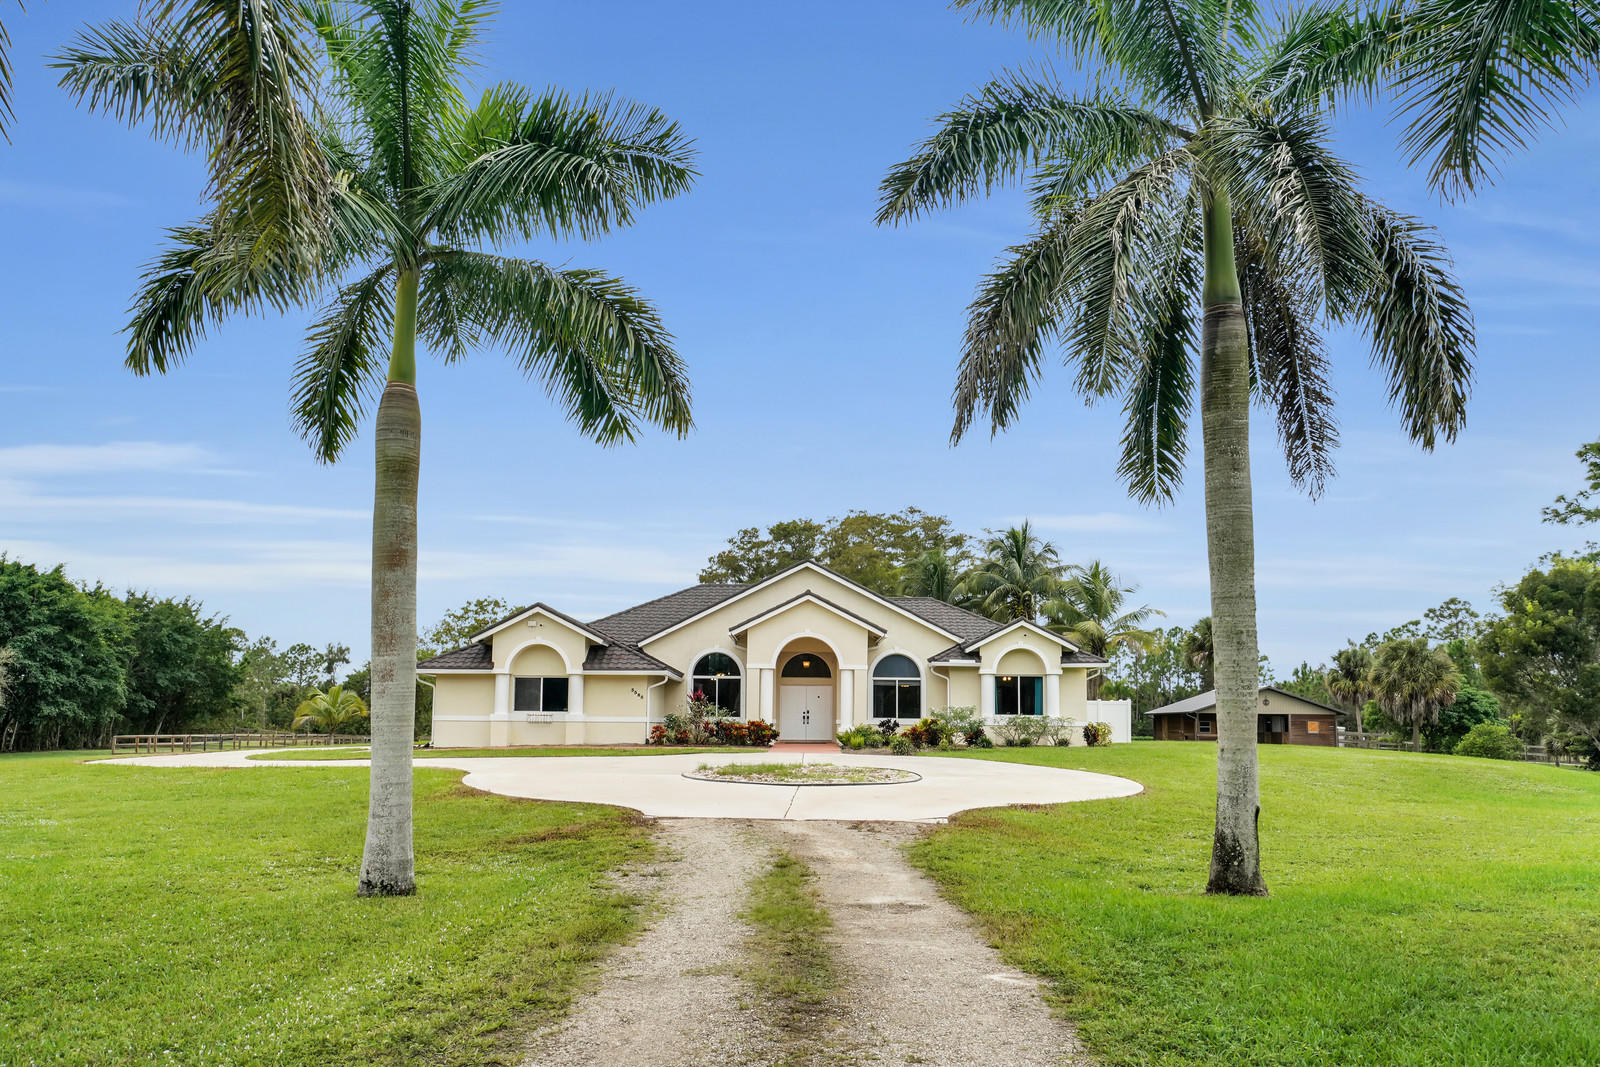 3585 Cabbage Palm Way, Loxahatchee, Florida 33470, 4 Bedrooms Bedrooms, ,2.1 BathroomsBathrooms,Single Family,For Sale,Cabbage Palm,RX-10579436